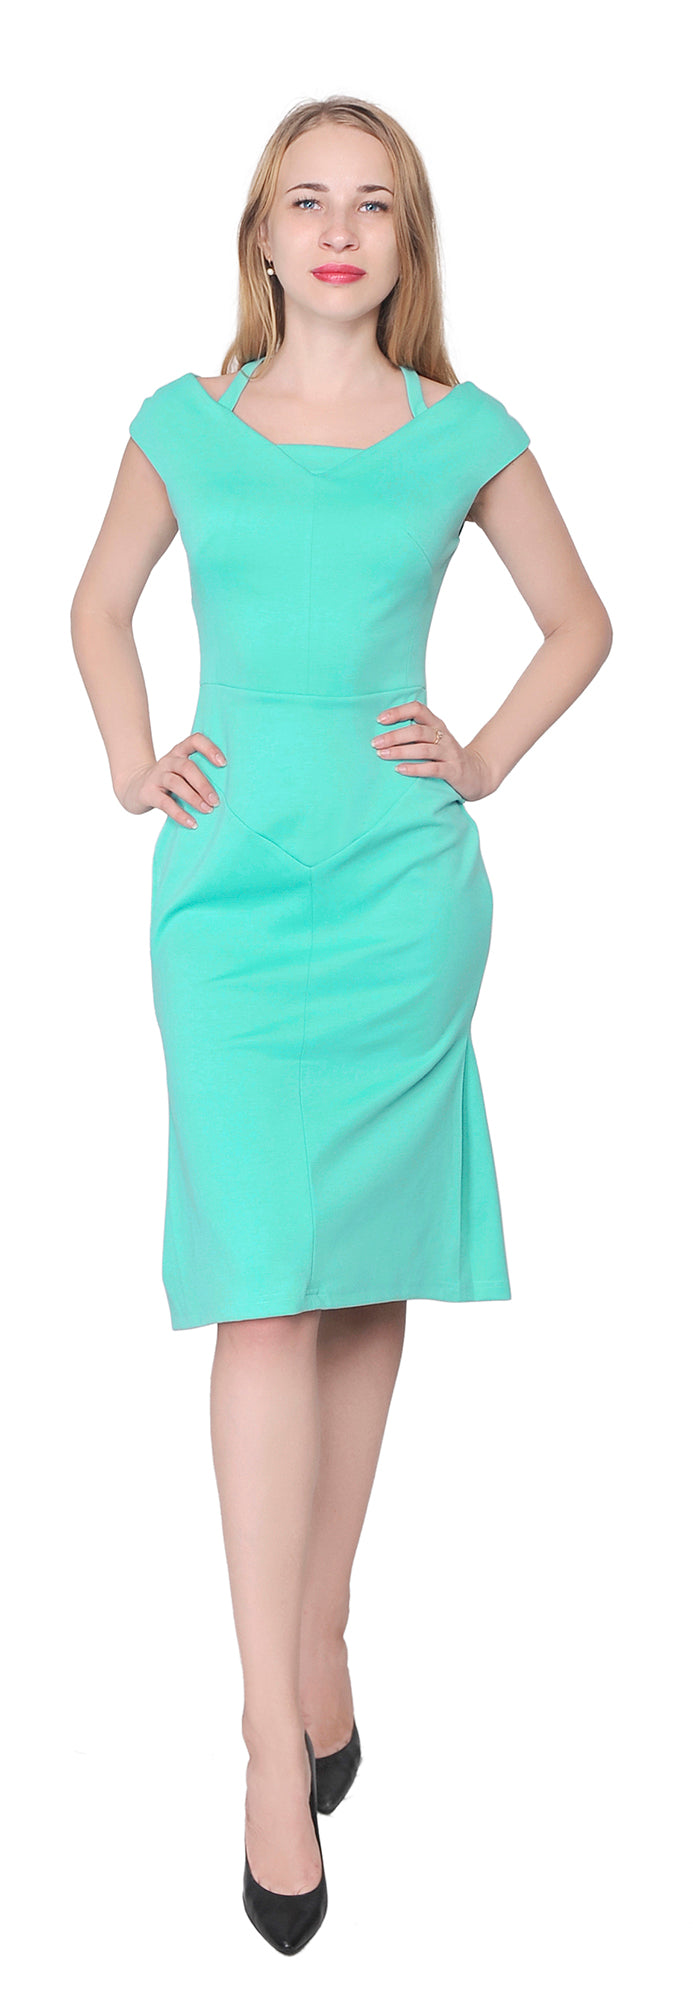 Women's Cocktail Mermaid Knee Length Dress